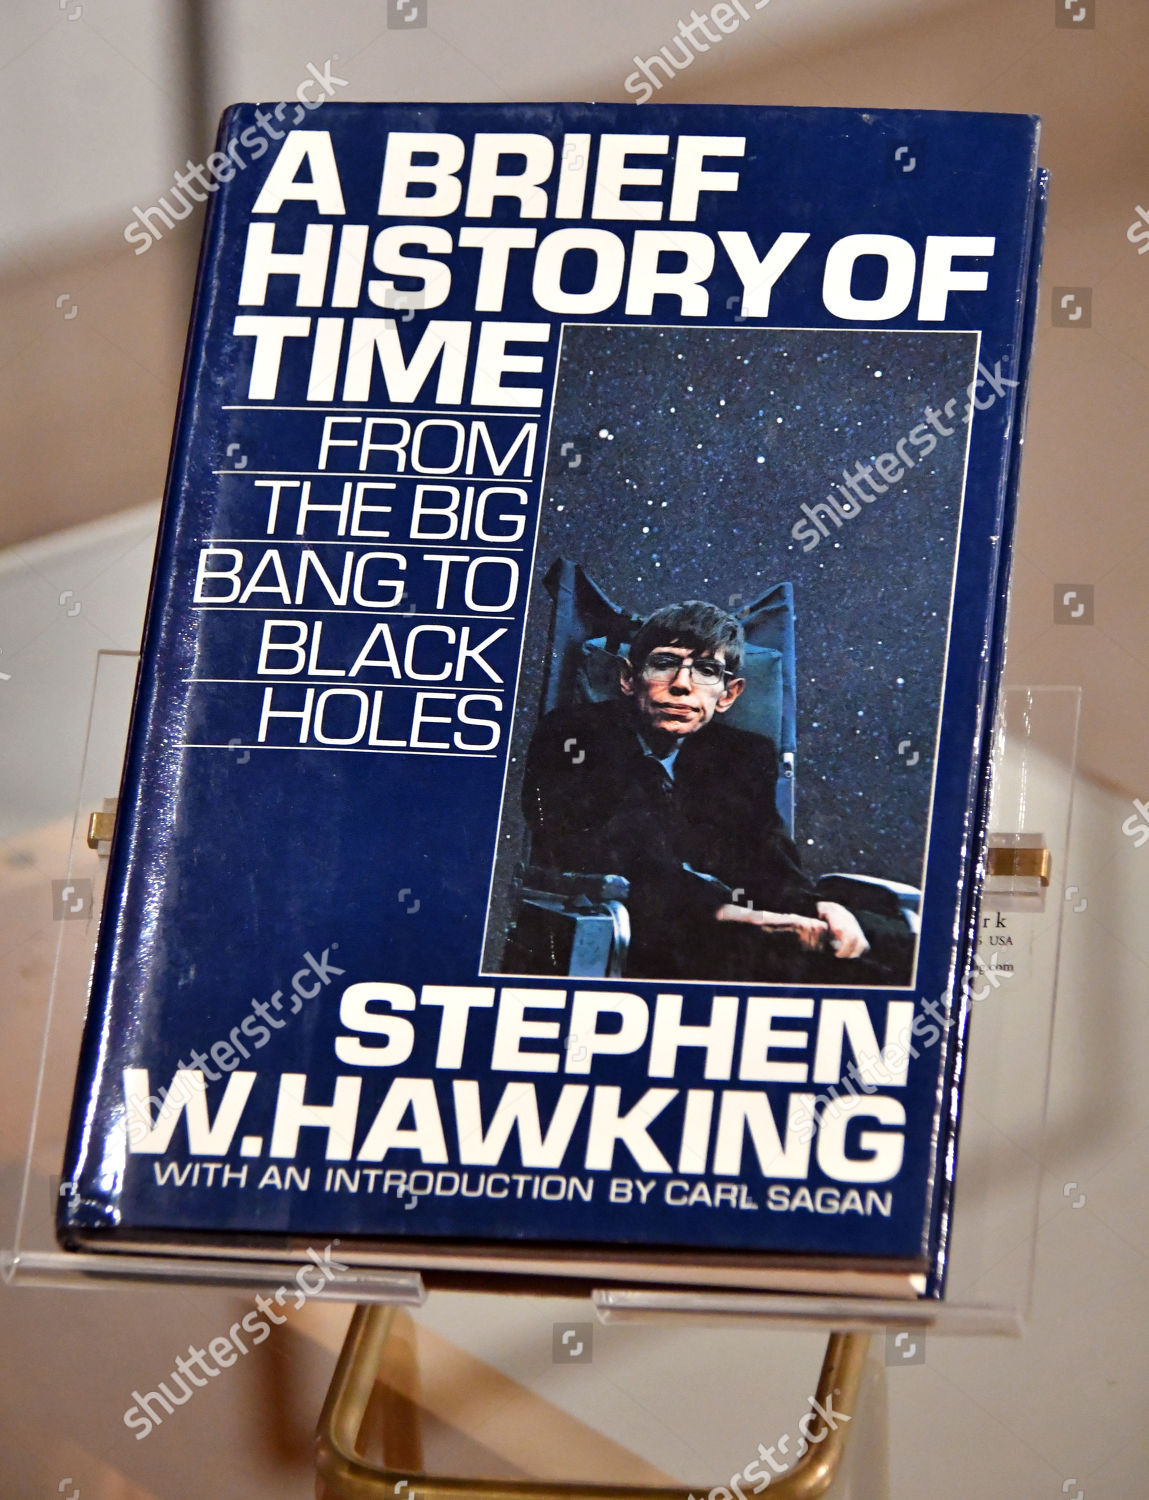 Stephen Hawkings Brief History Time 1988 Bestselling